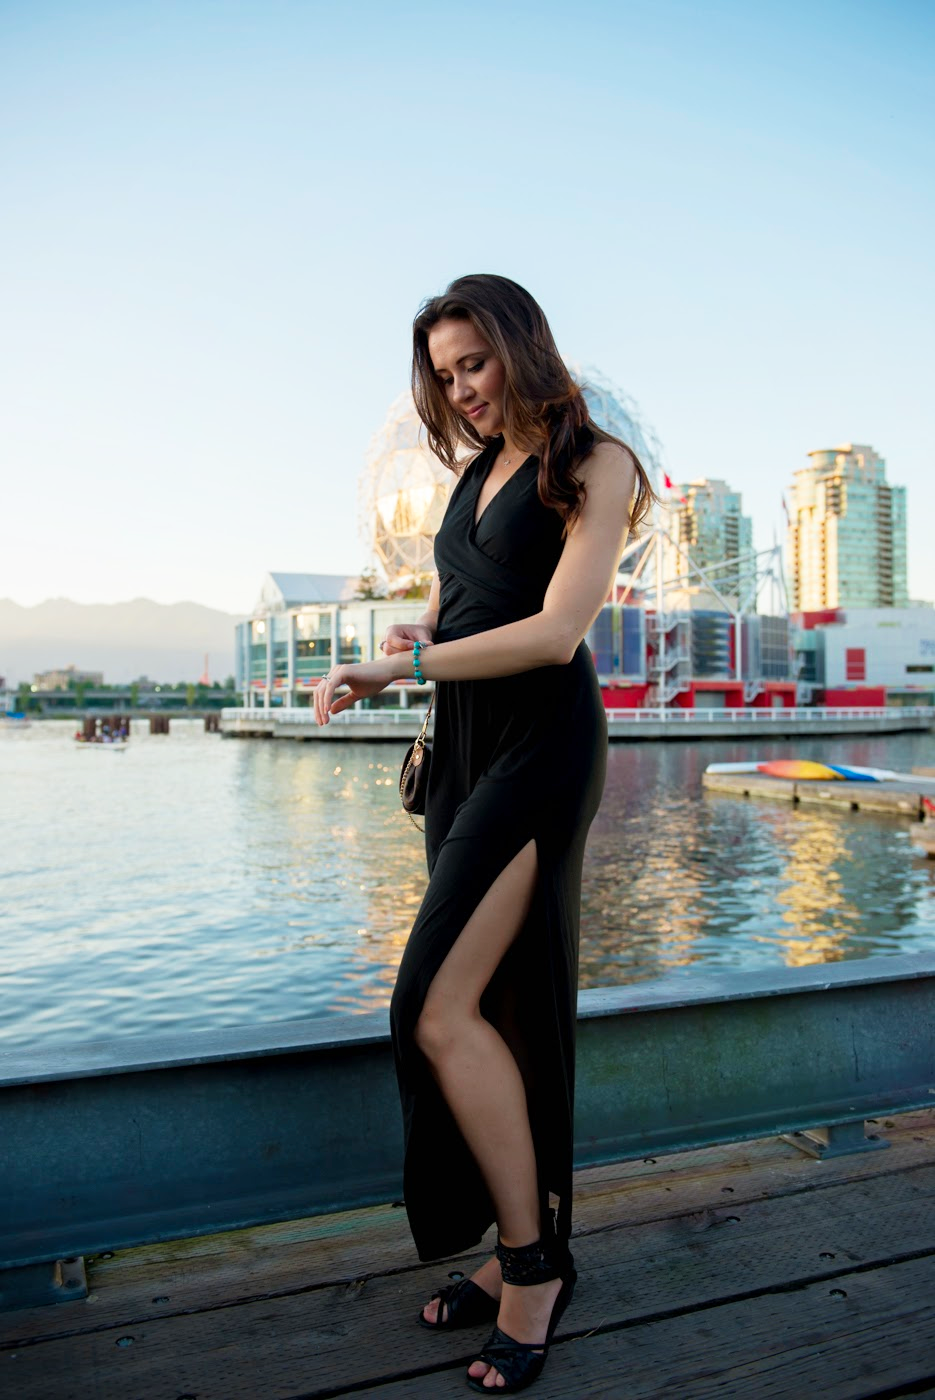 the broken stiletto, vancouver fashion, vancouver fashion blog, vancouver fashion blogger, vancouver style, canadian fashion blog, canadian fashion, canadian fashion blogger, black maxi dress, black sandals, Louis Vuitton Favorite purse